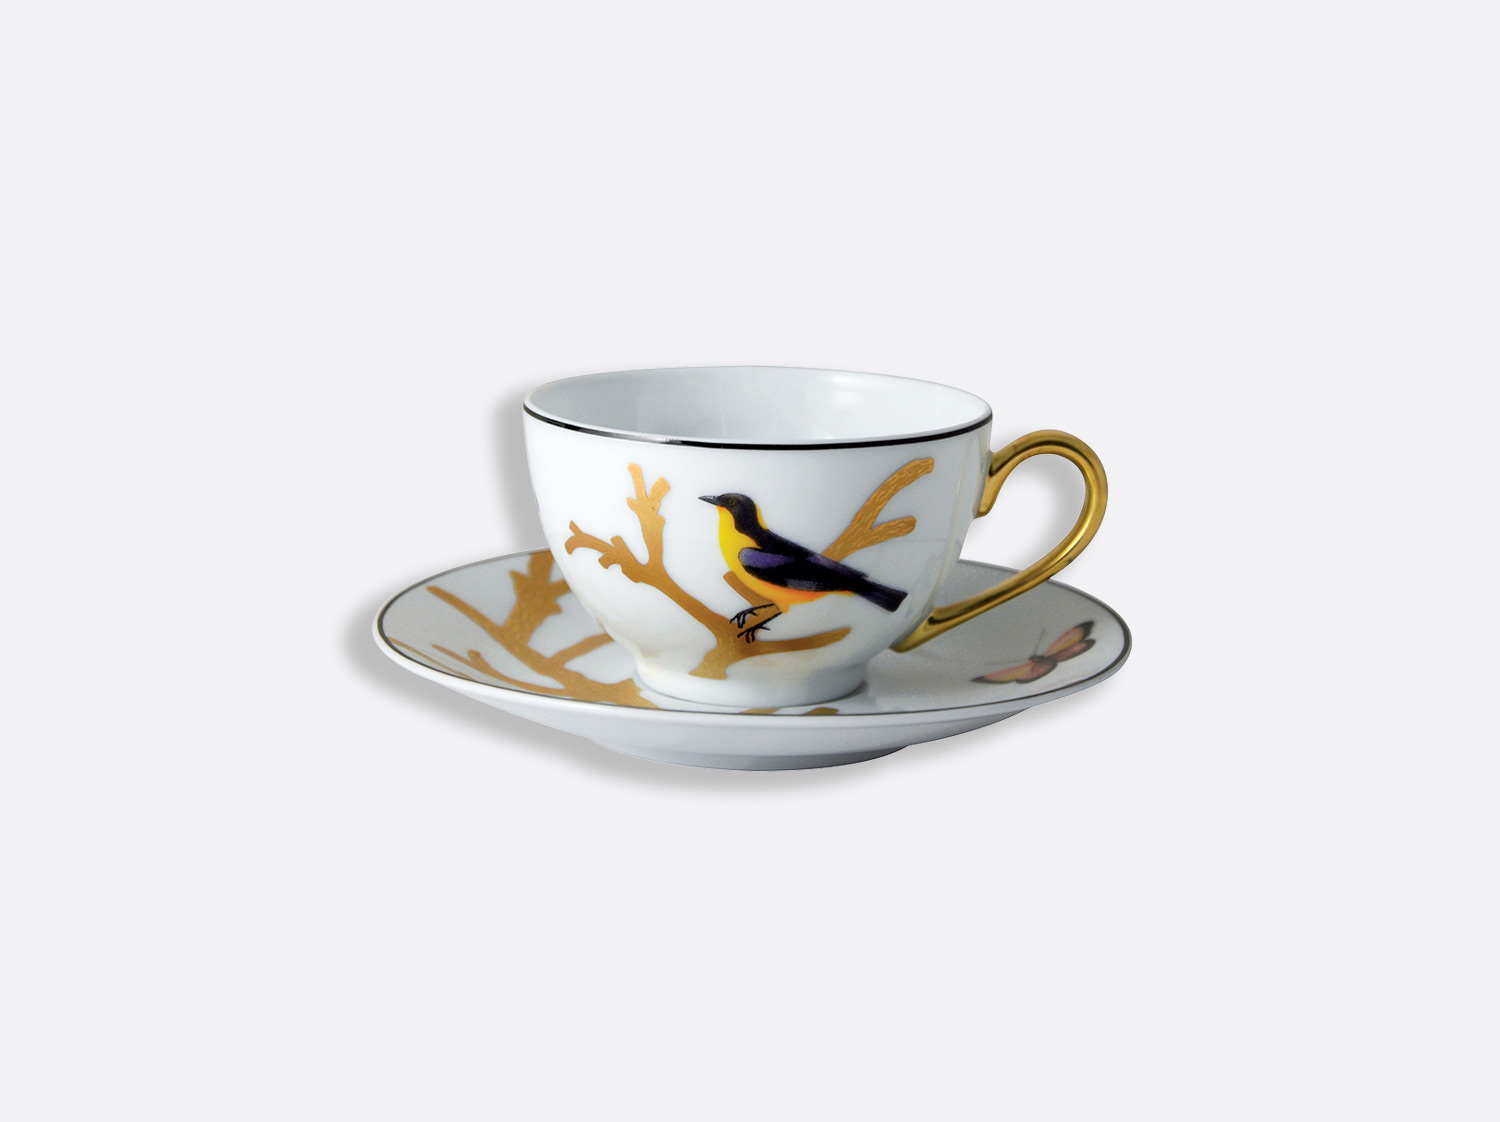 China Tea cup and saucer 4.4 oz of the collection Aux oiseaux | Bernardaud